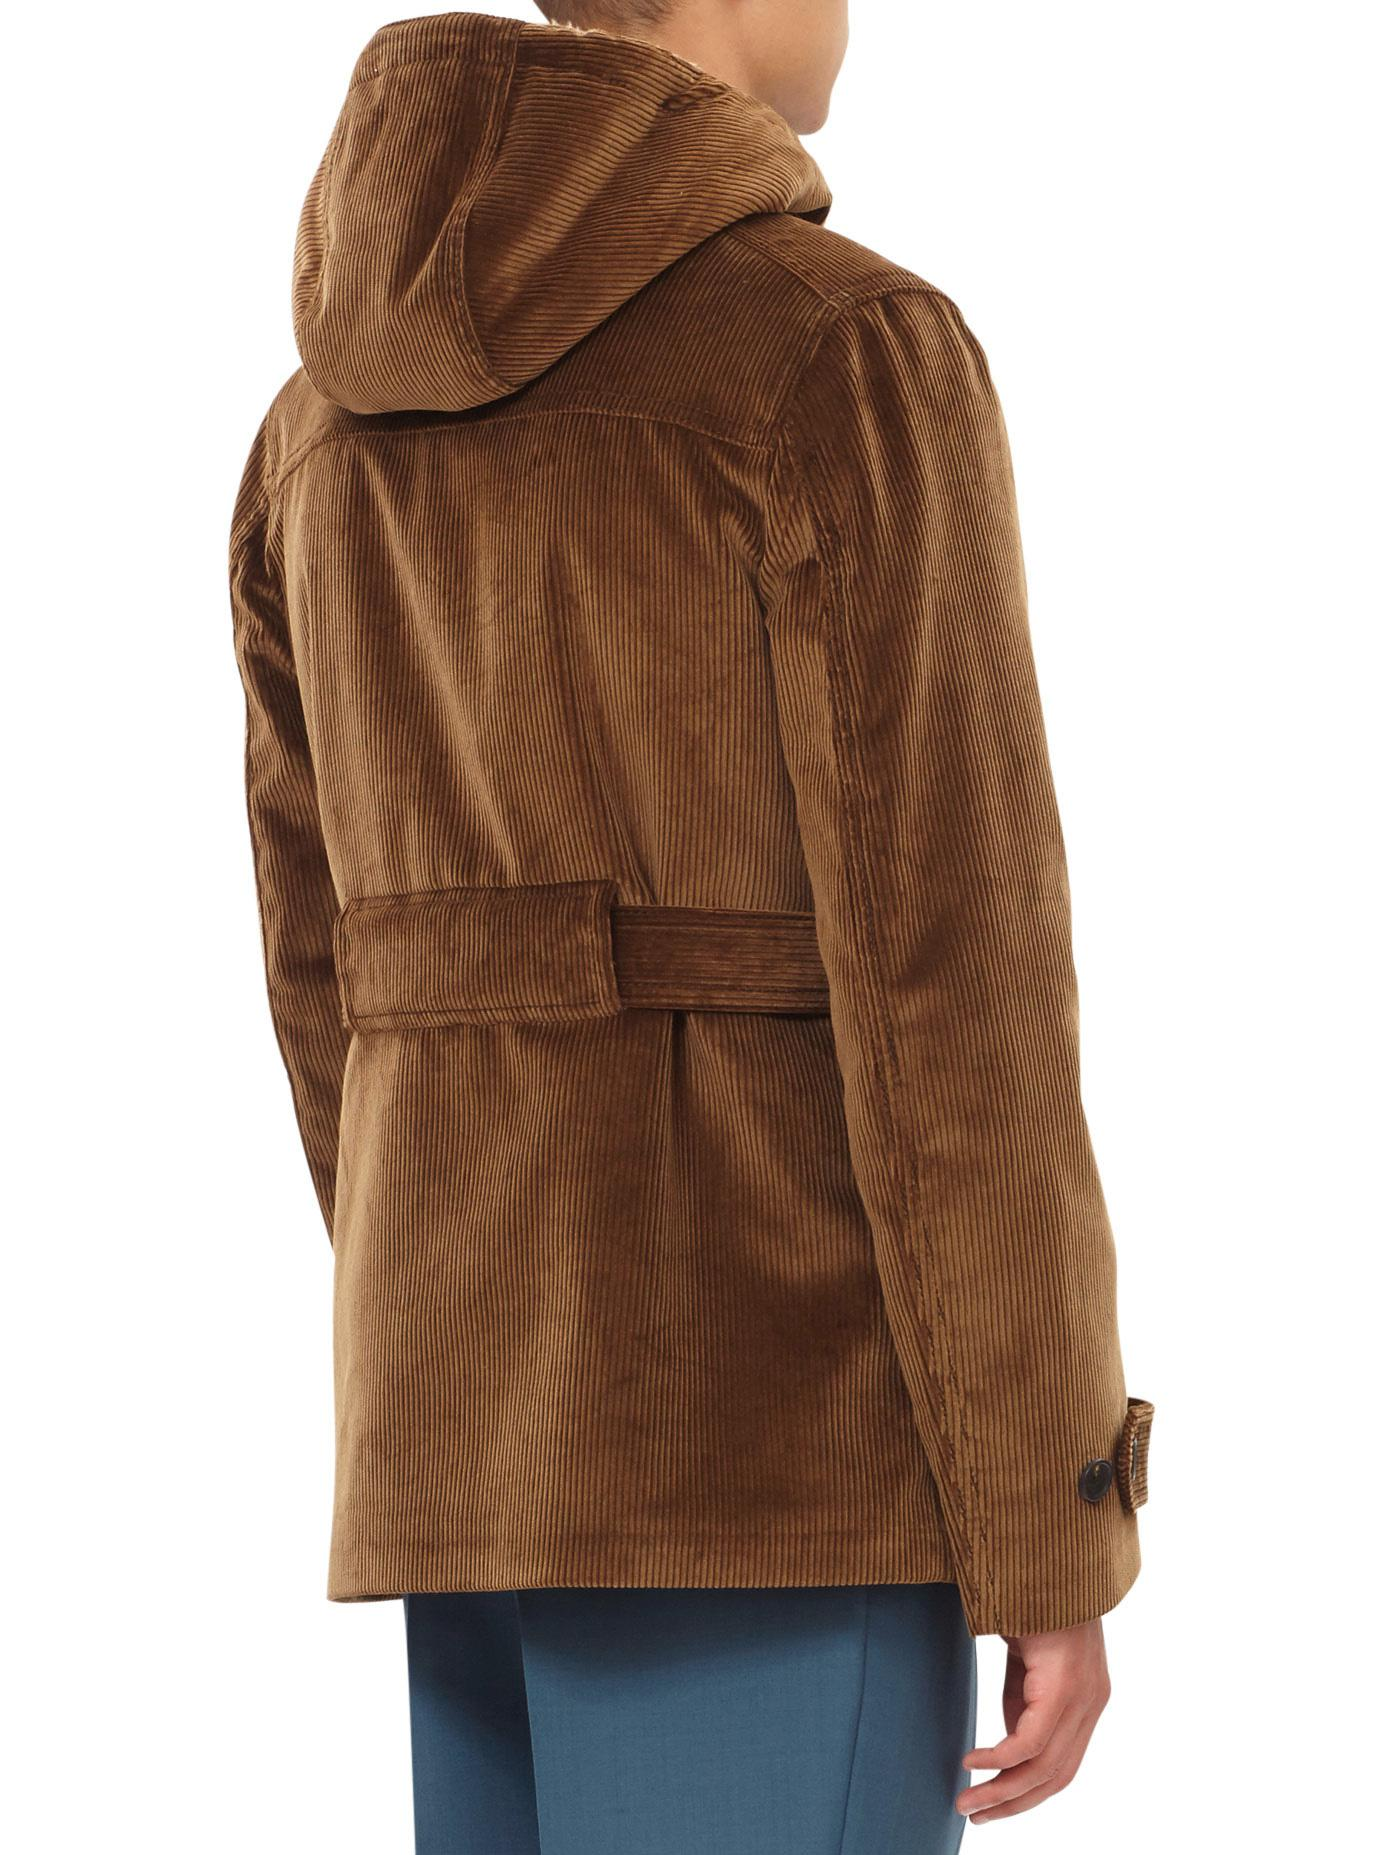 Prada Hooded Corduroy Jacket in Brown for Men